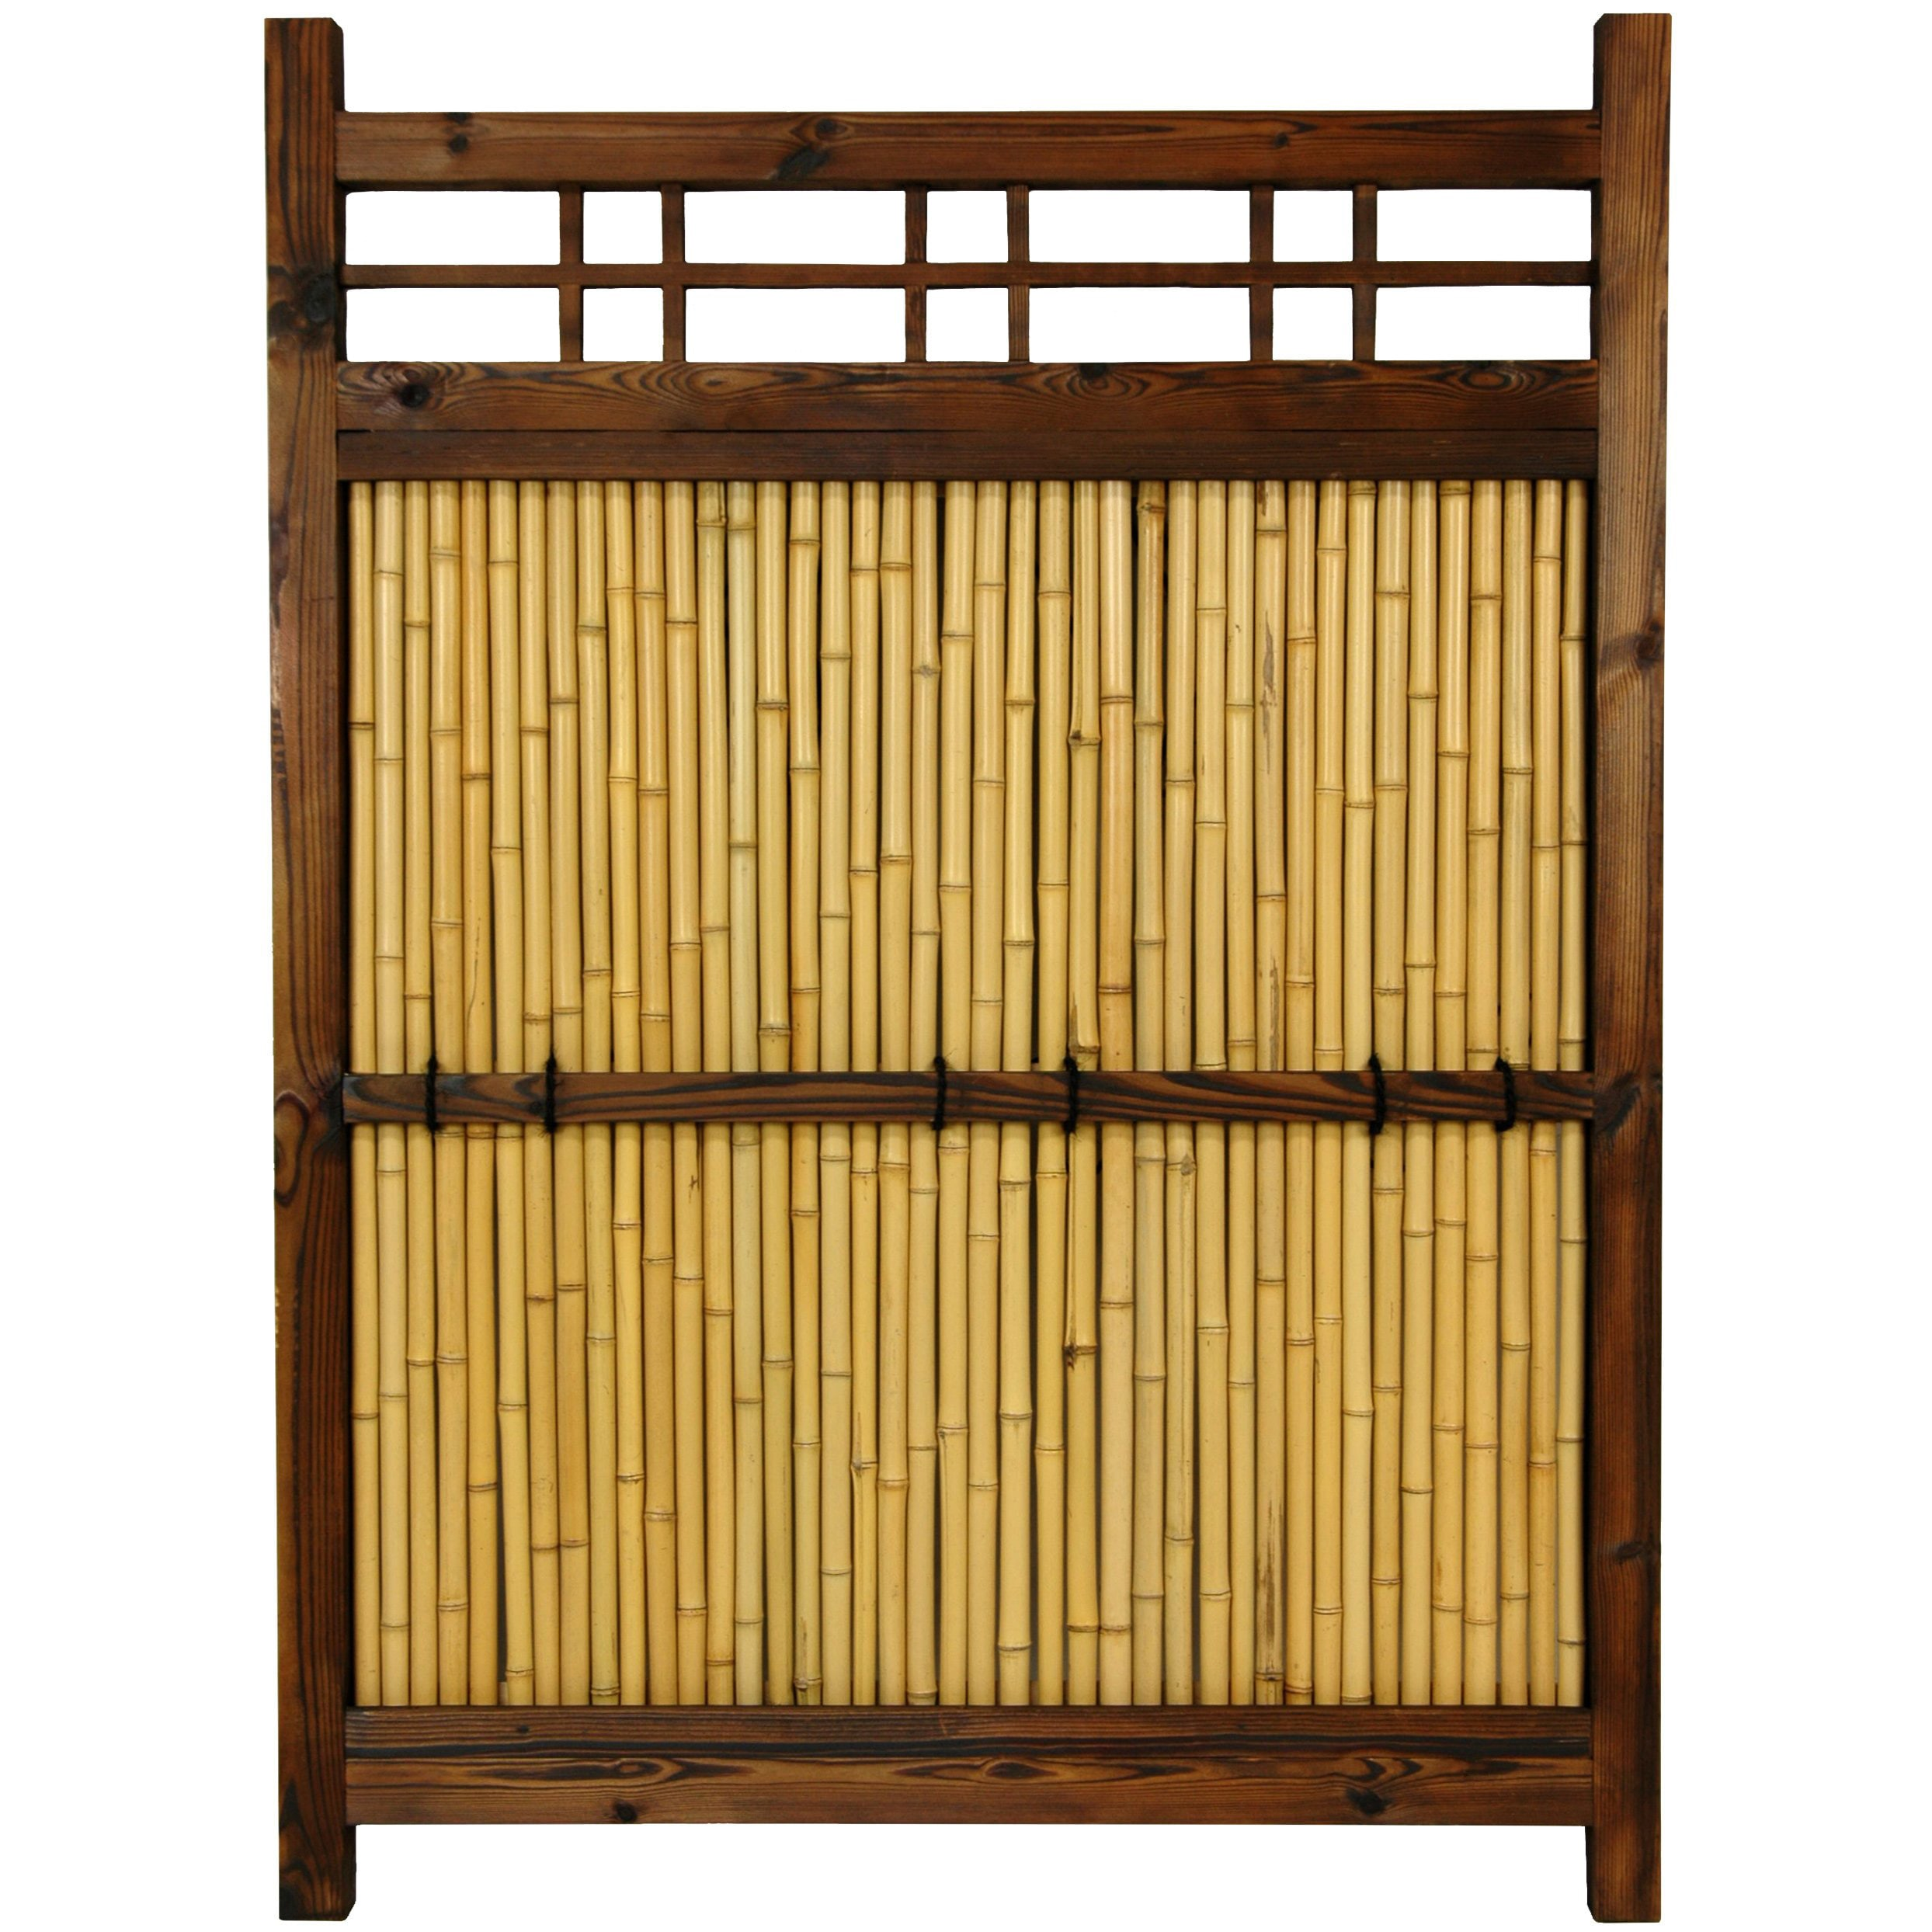 Handmade Japanese Bamboo 4x3-foot Kumo Fence (China), Bro...